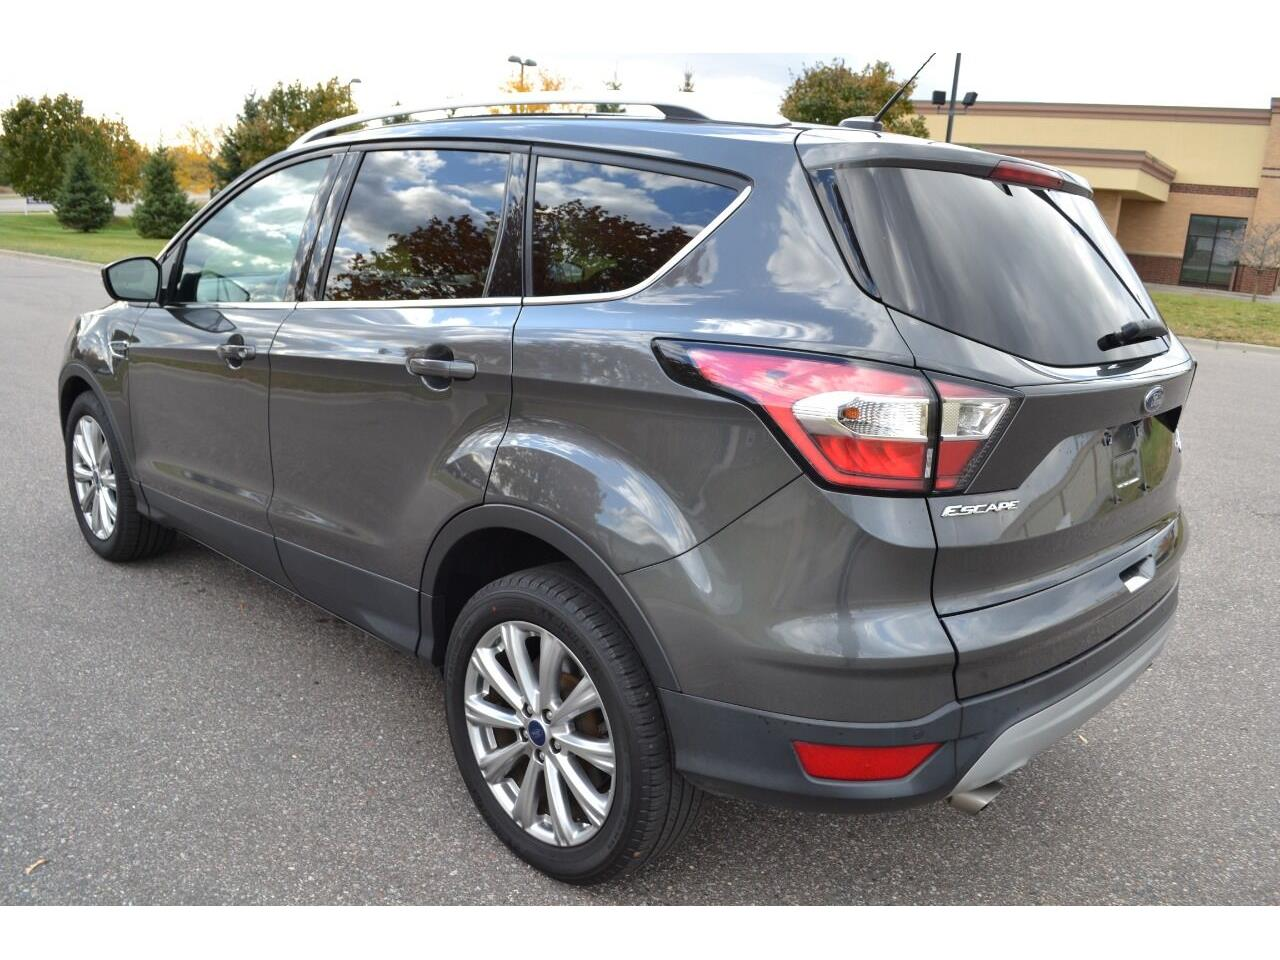 2017 Ford Escape (CC-1414898) for sale in Ramsey, Minnesota